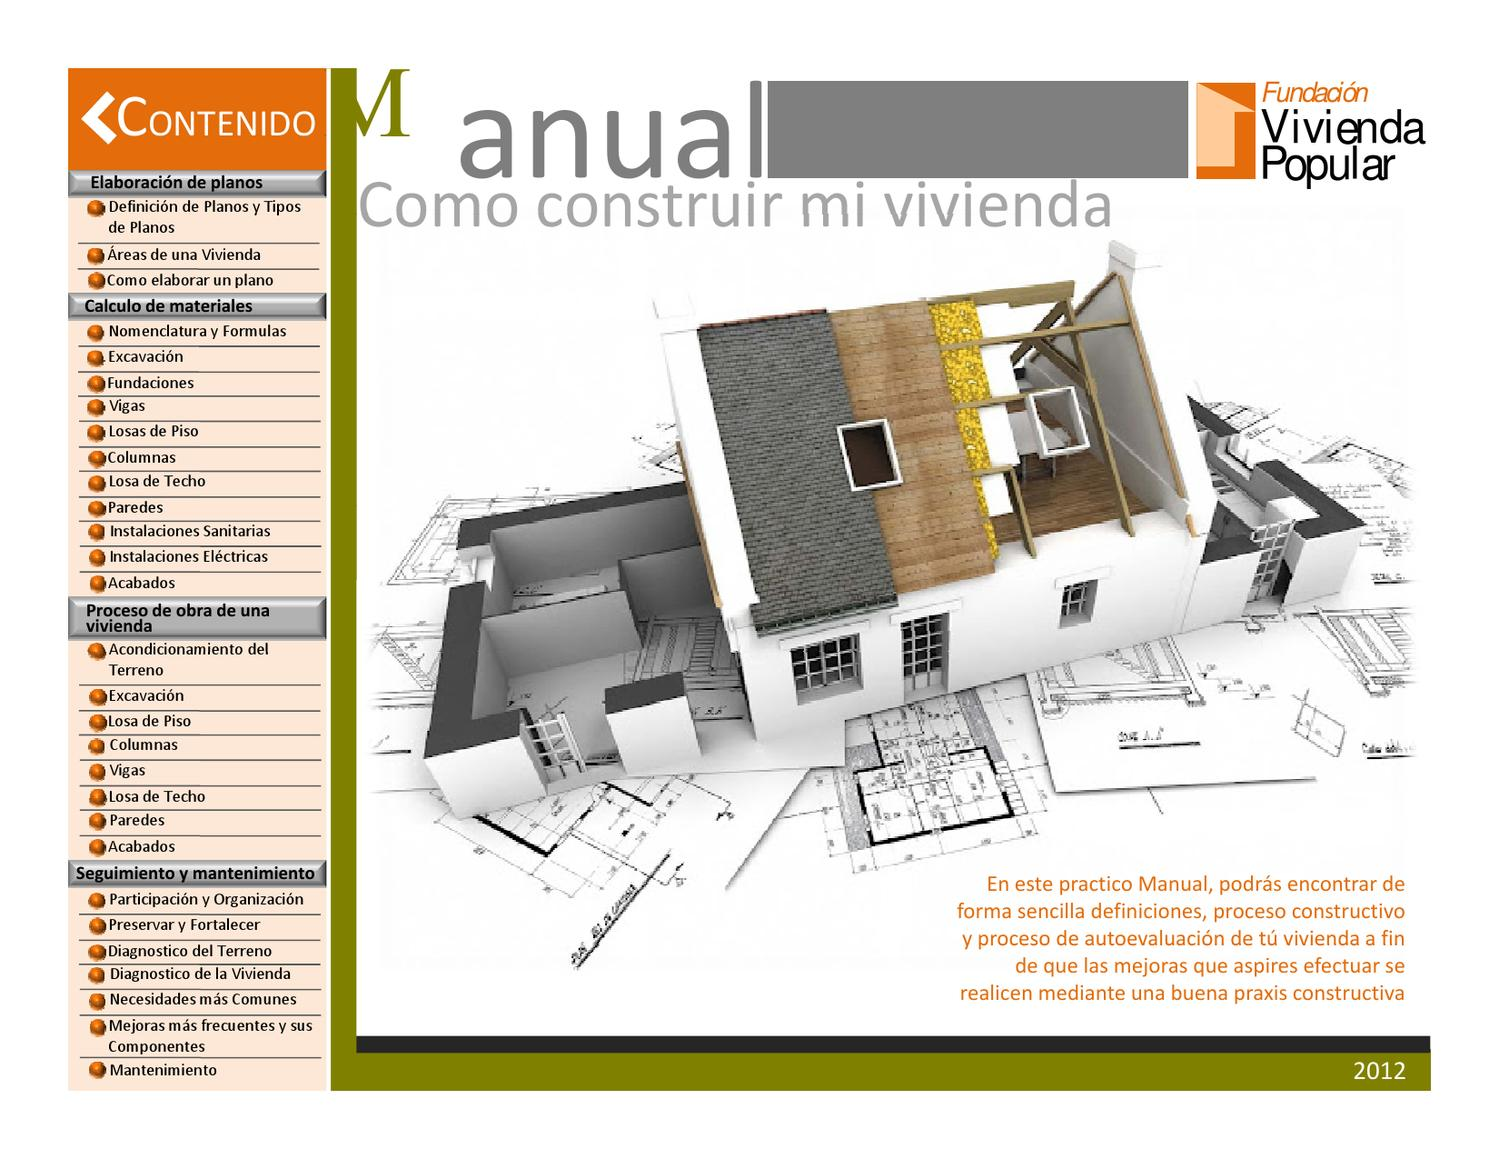 Manual ¿Cómo construir mi vivienda? by jennifer matute - issuu